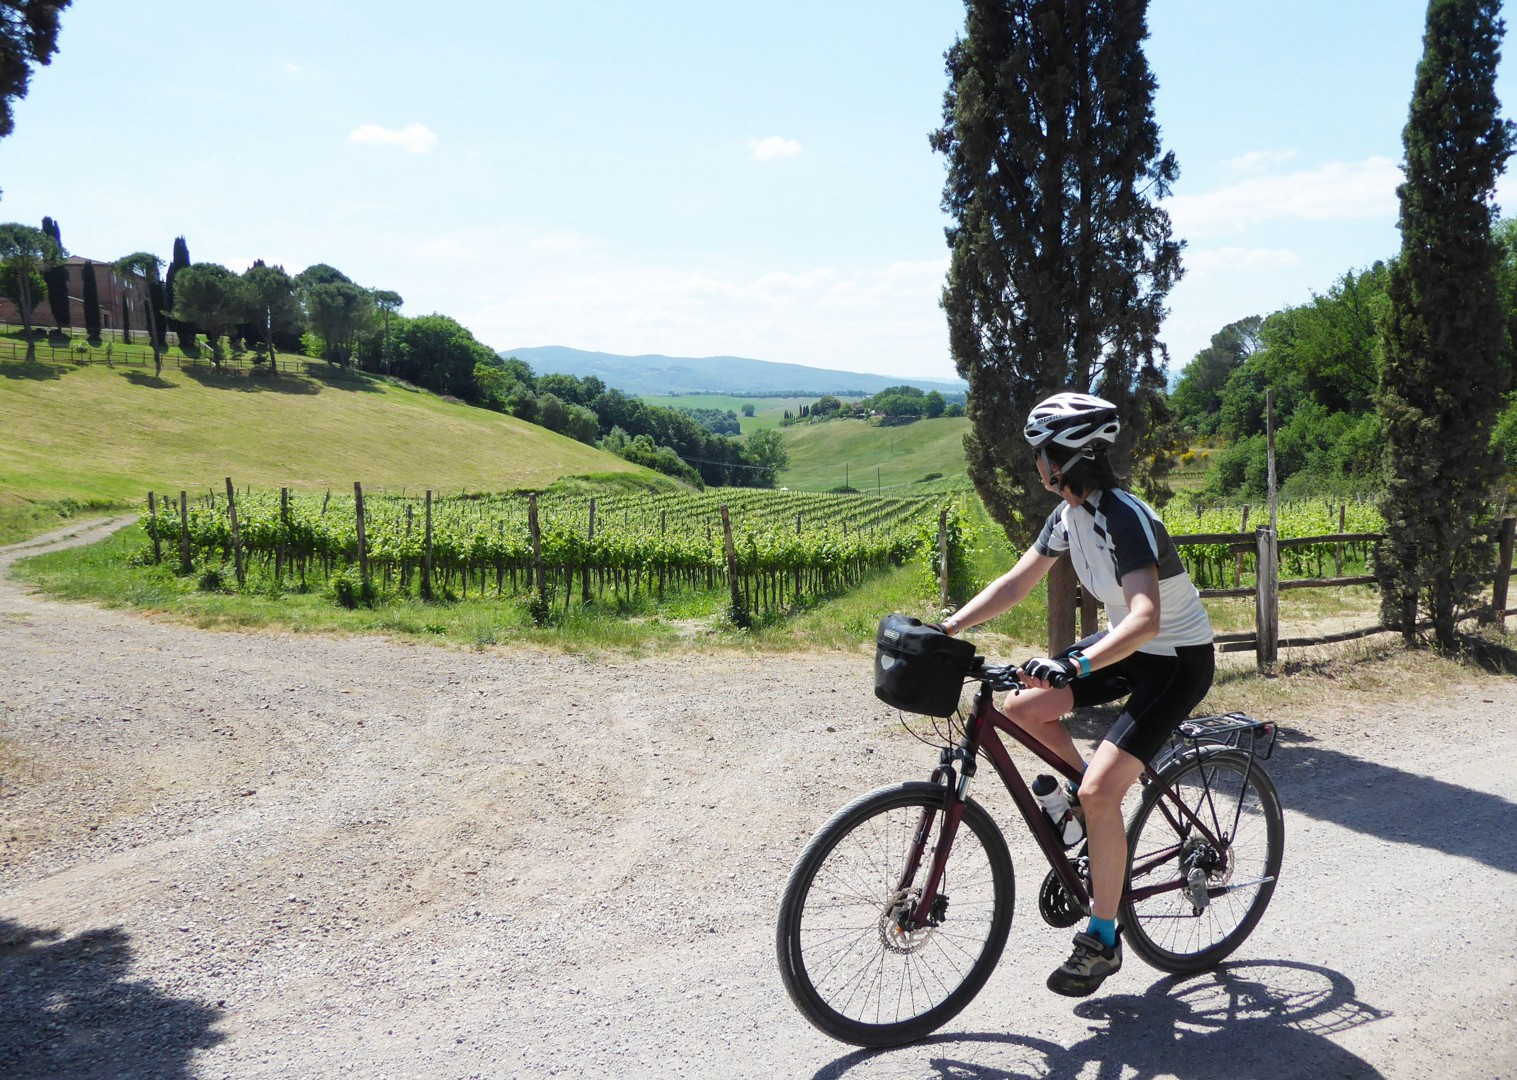 Guided-Leisure-Cycling-Holiday-Italy-Via-Francigena-Tuscany-to-Rome-stop-and-enjoy-the-view - Italy - Via Francigena (Tuscany to Rome) - Guided Leisure Cycling Holiday - Italia Leisure and Family Cycling